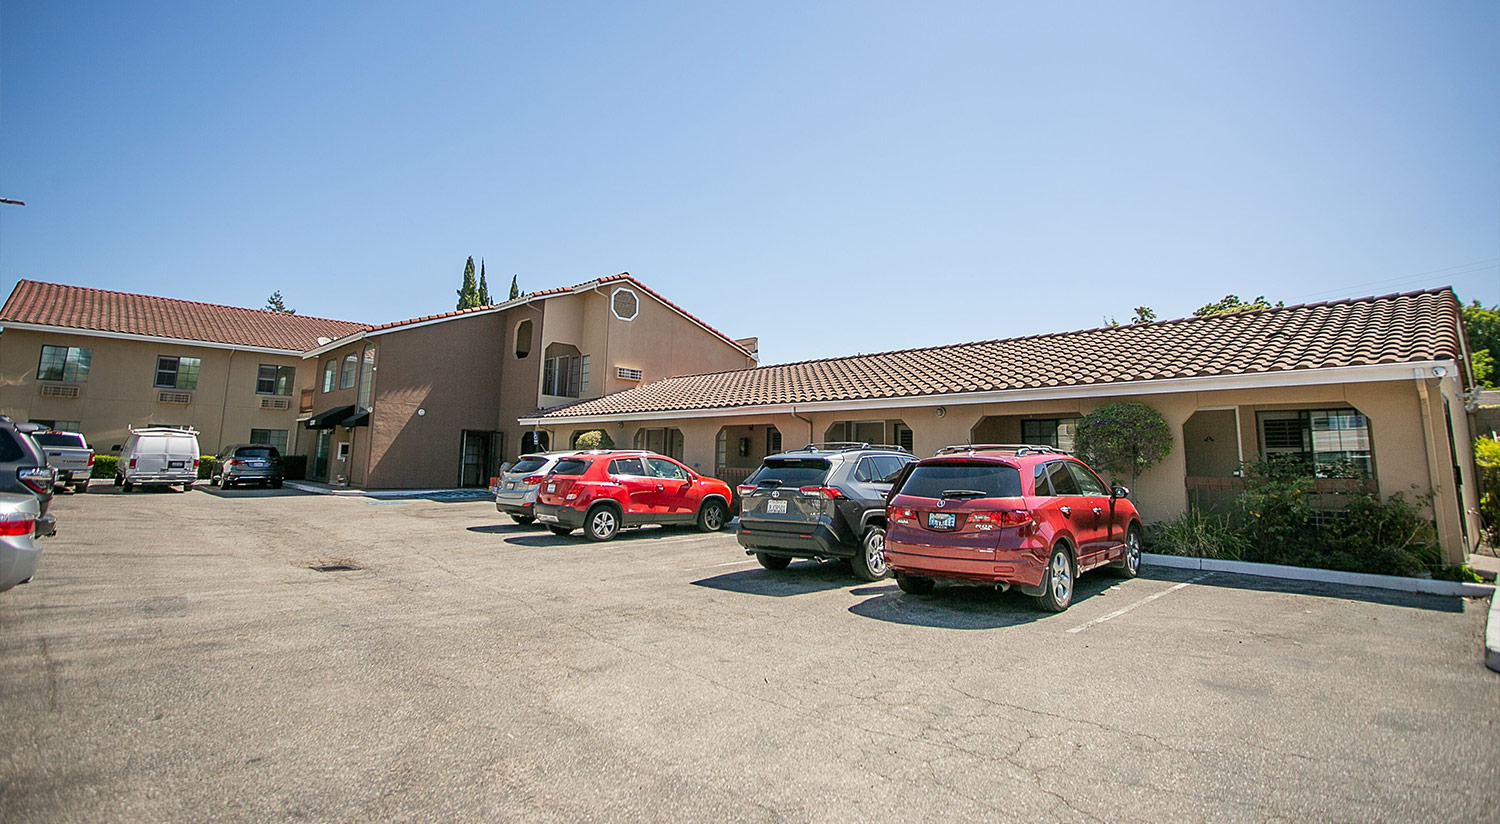 THE TRAVEL INN SUNNYVALE OFFERS FREE PARKING AND EASY ACCESSIBILITY GET IN AND OUT WITH EASE WITH OUR CONVENIENTLY LOCATED SILICON VALLEY HOTEL